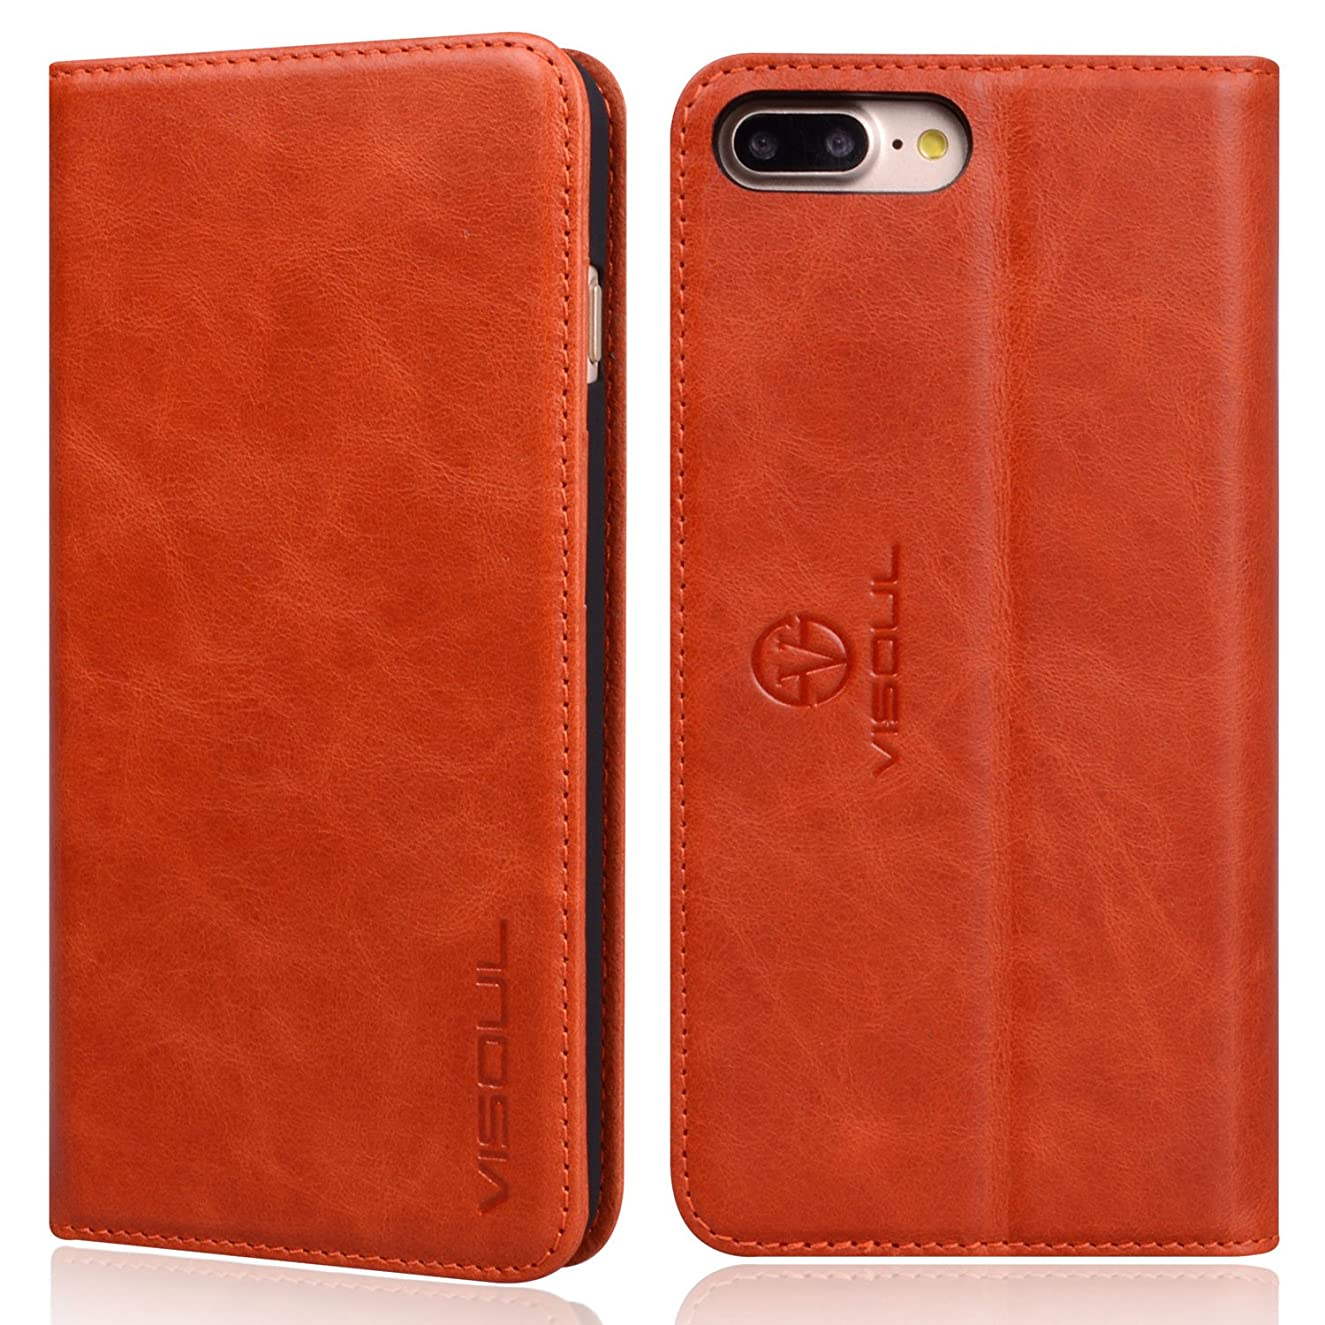 iPhone 7 Plus Wallet Case, VISOUL Genuine Leather Luxury Case, Slim Folio Book Design with Stand and 3 Card Slots, Magnetic Closure Protective Case for Apple iPhone 8 + / 7 + (Orange)